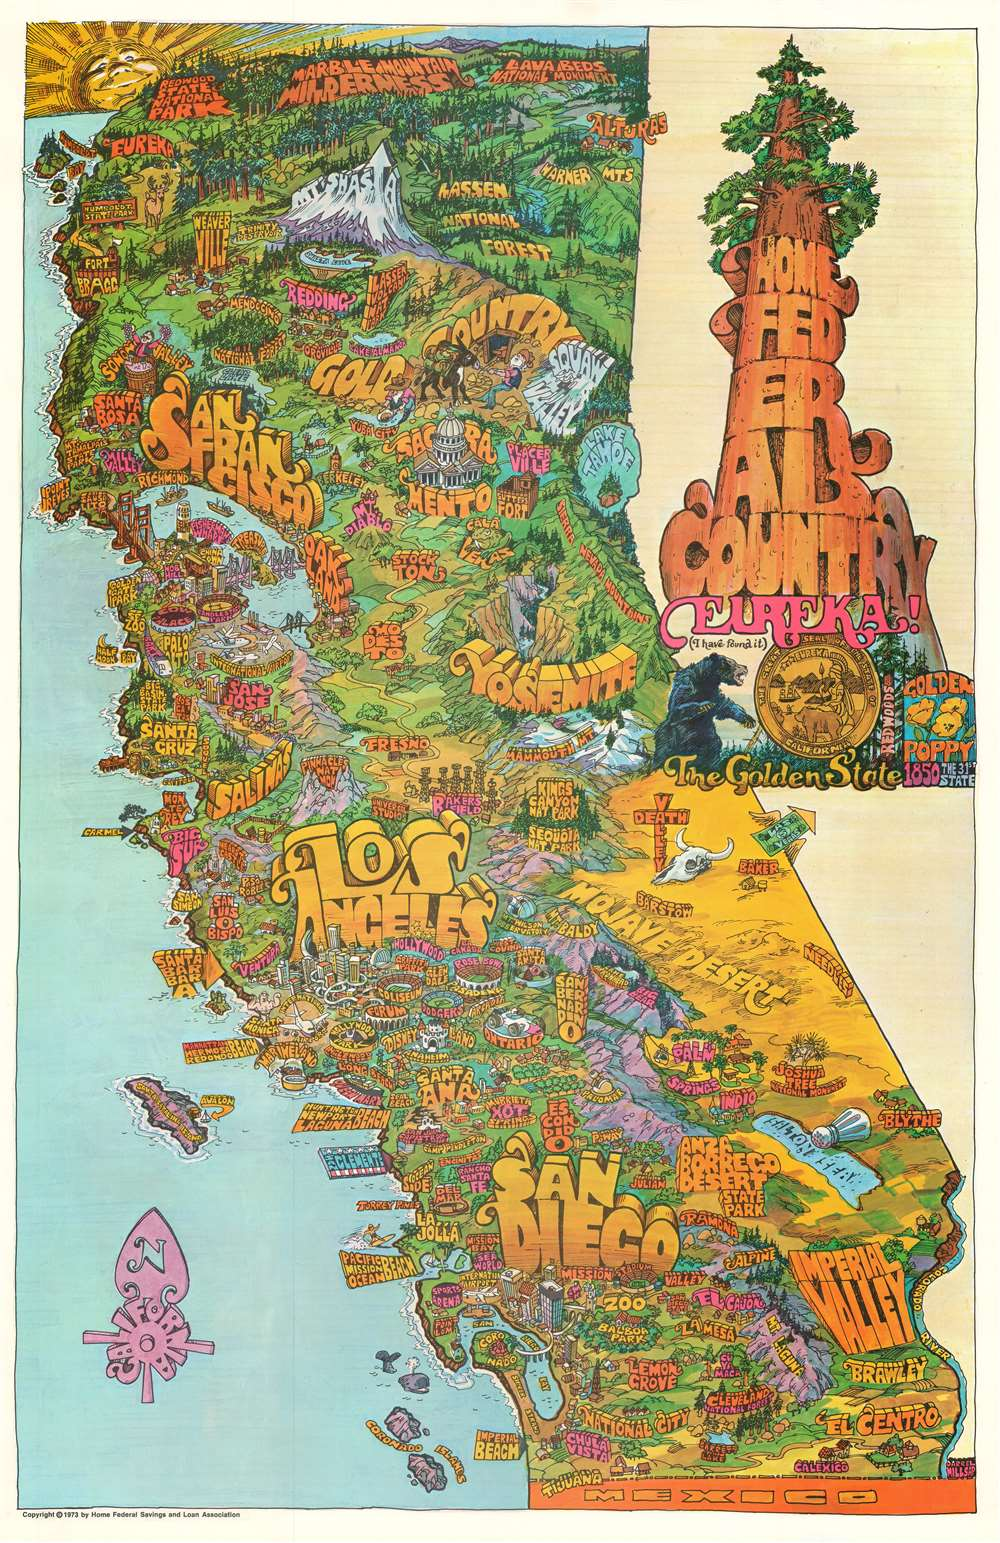 Home Federal Country. Eureka! The Golden State. - Main View